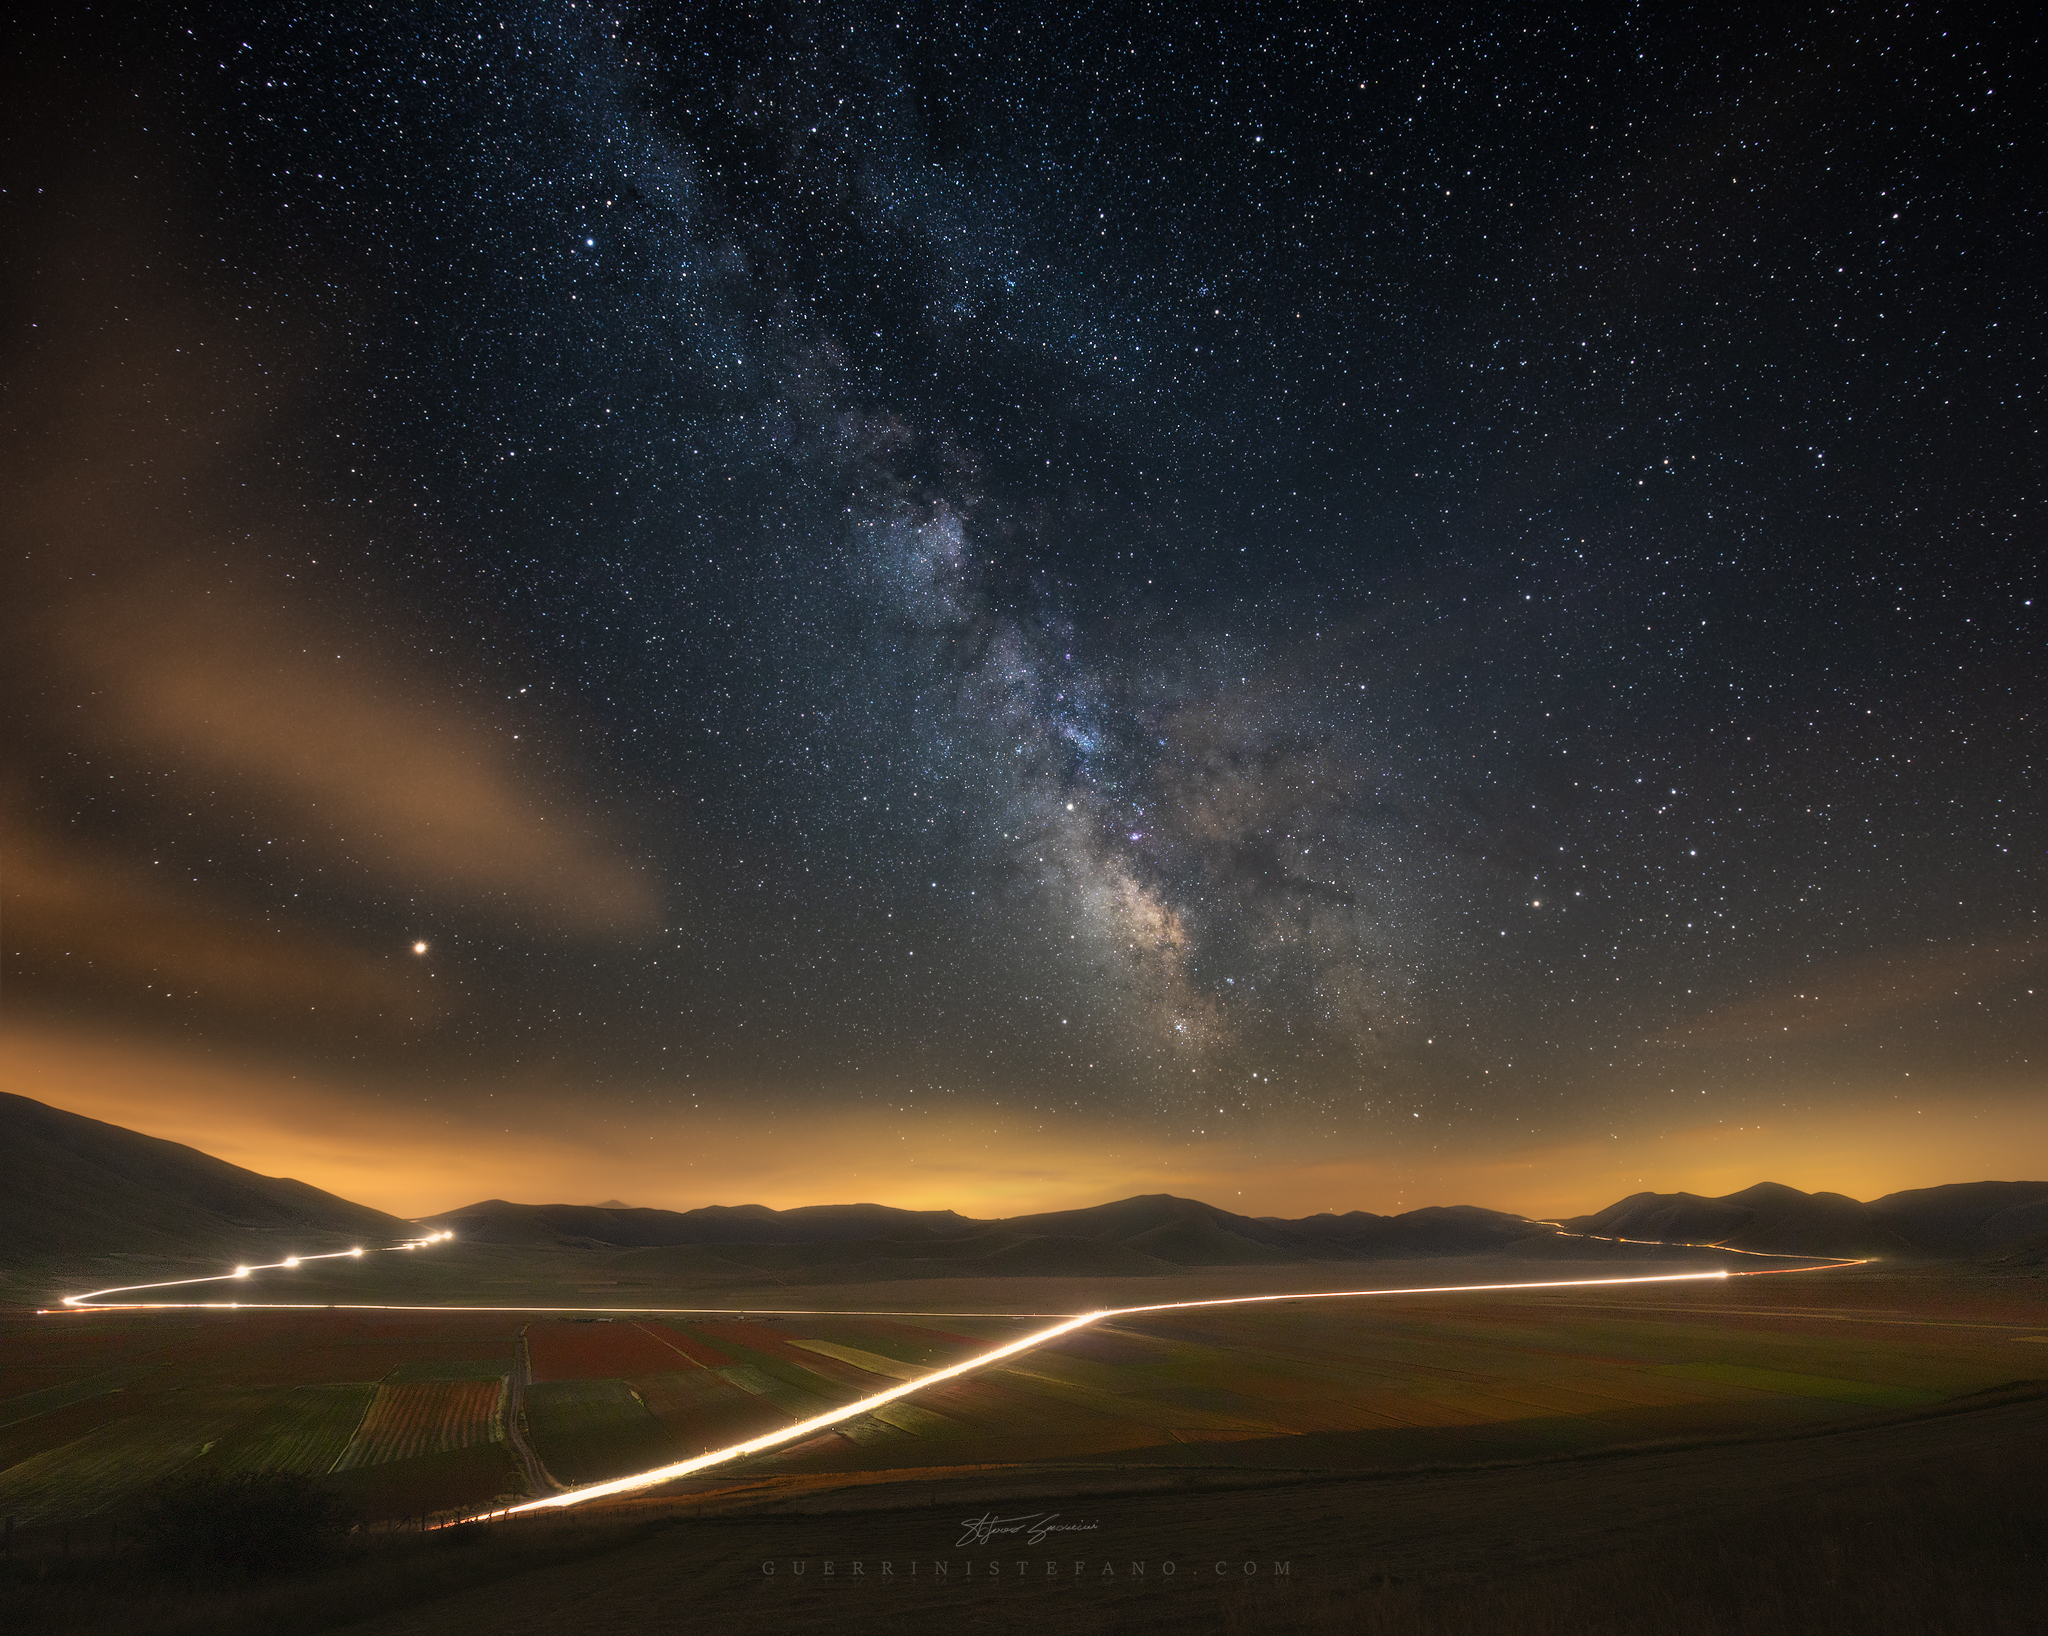 Milky Way over the flowed fields of Castelluccio...